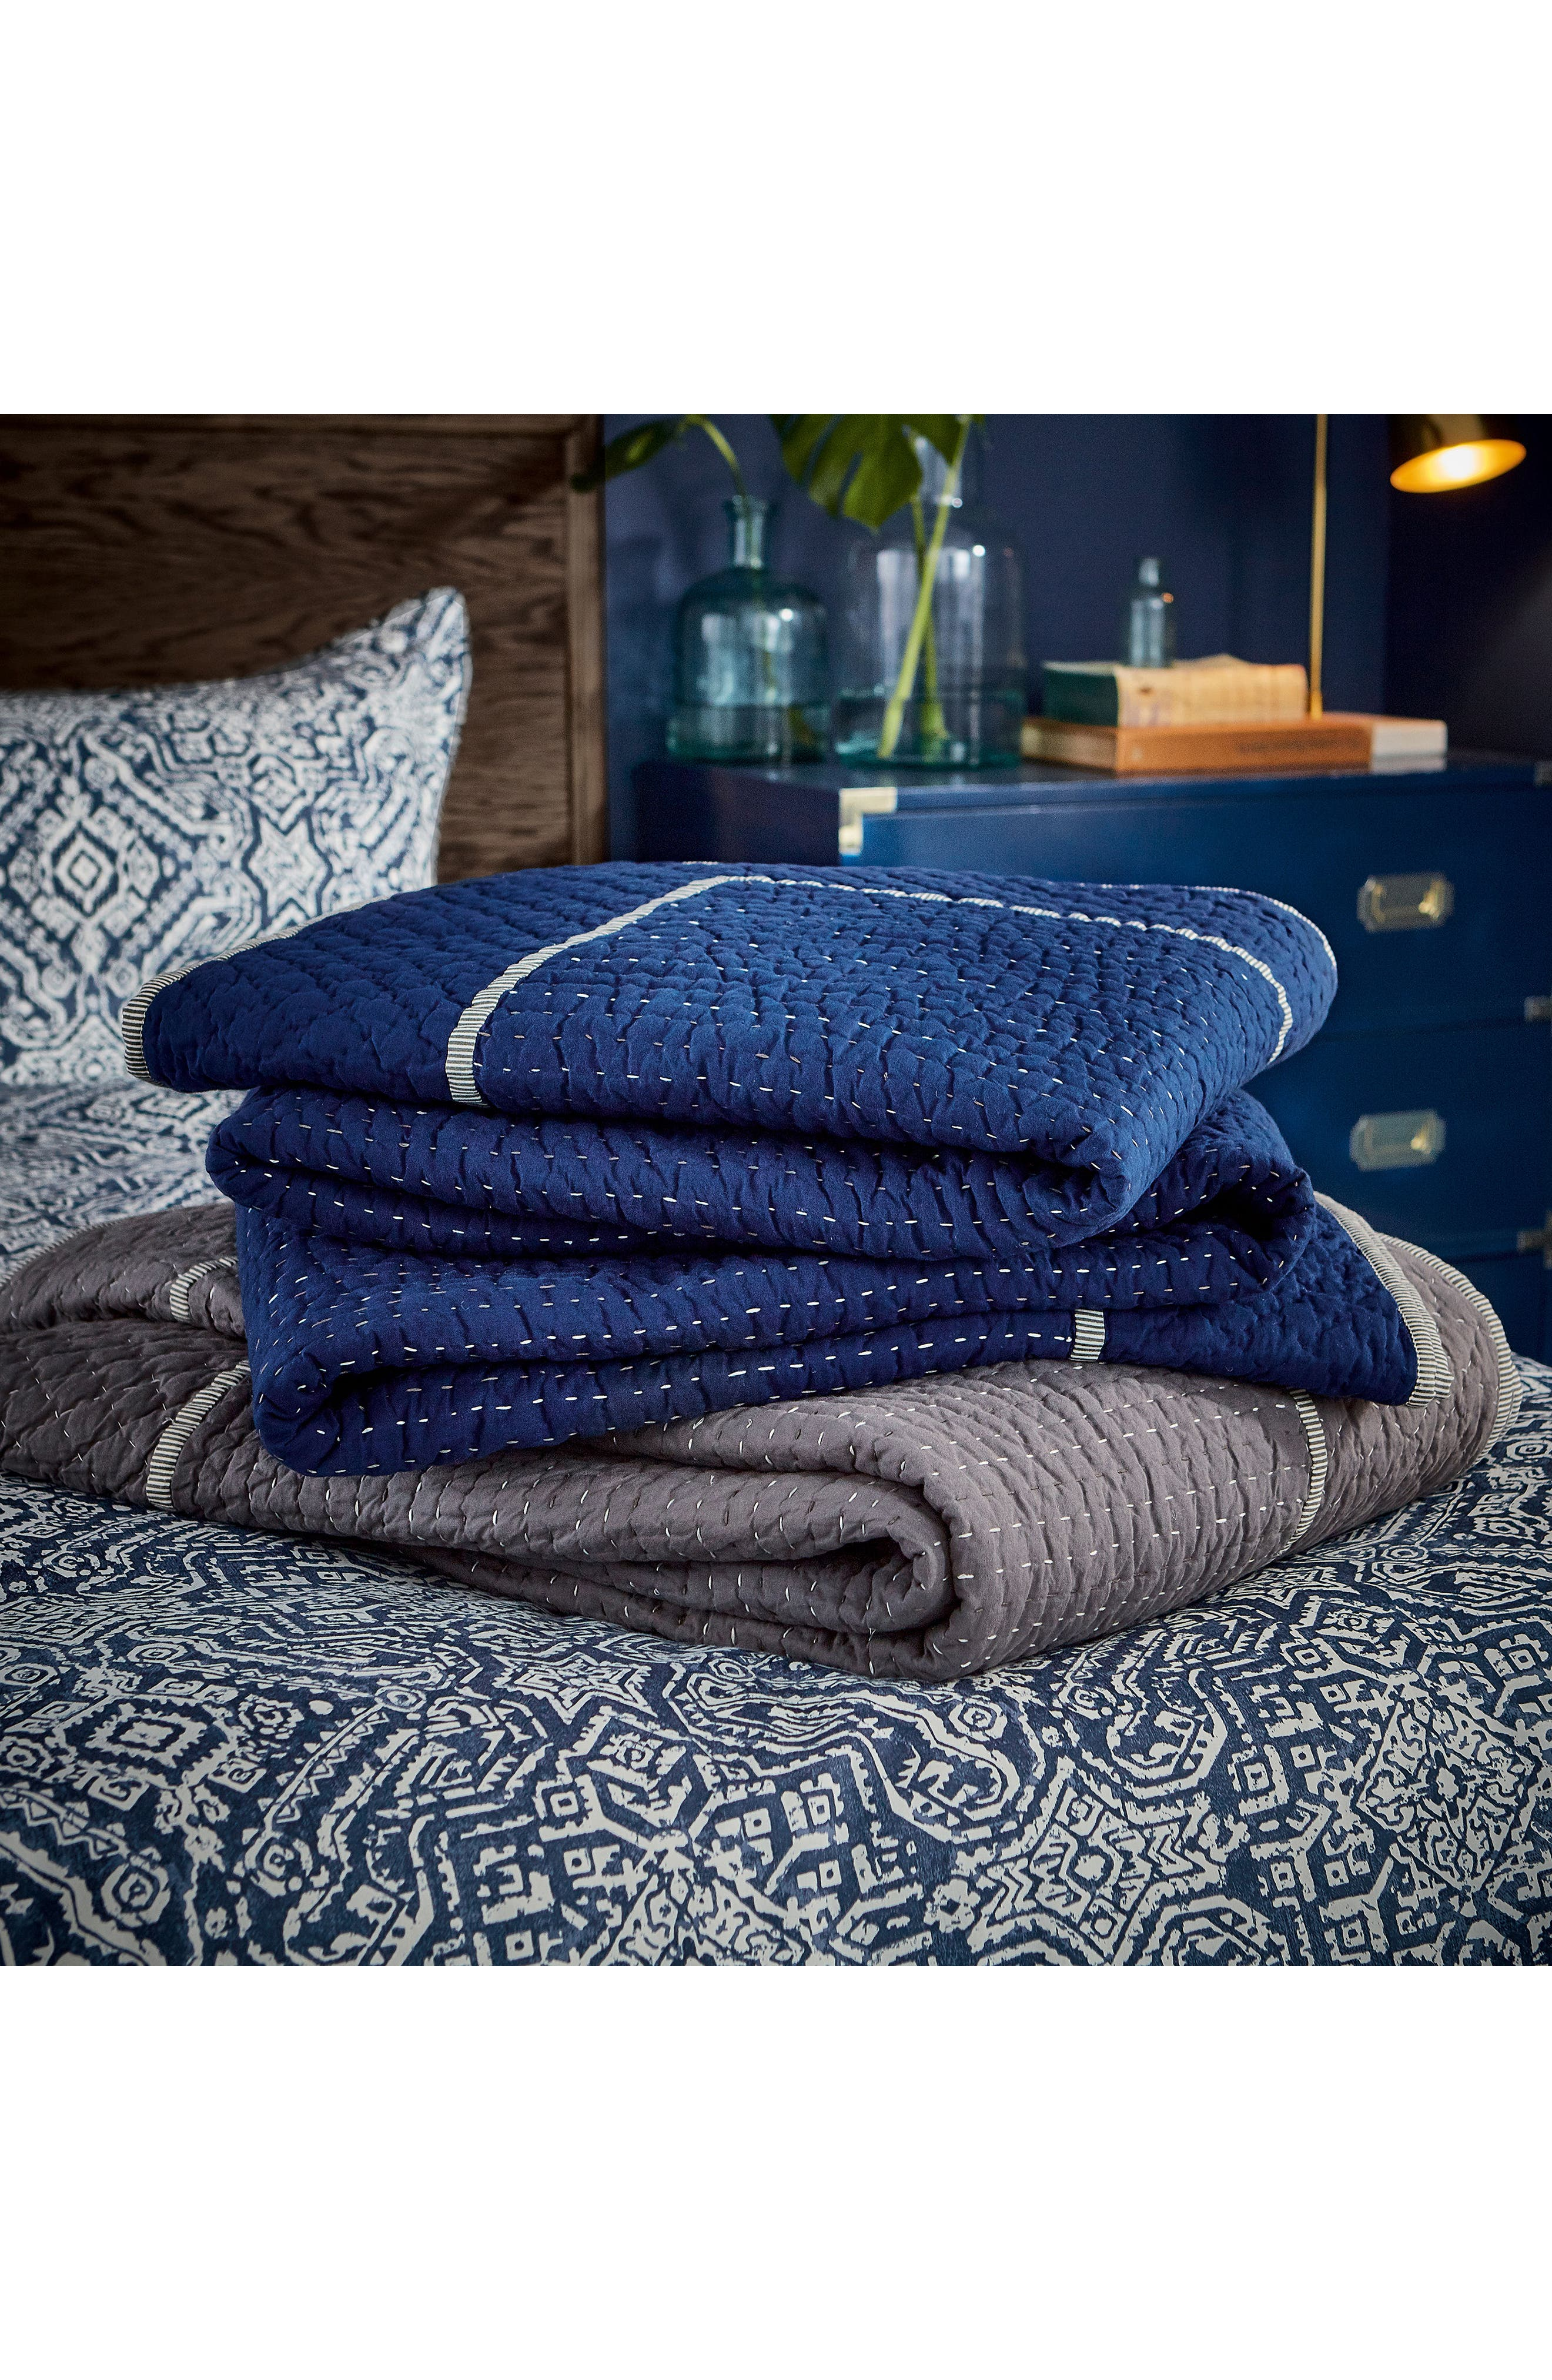 Ila Hand Stitched Kantha Quilt,                             Alternate thumbnail 5, color,                             Navy